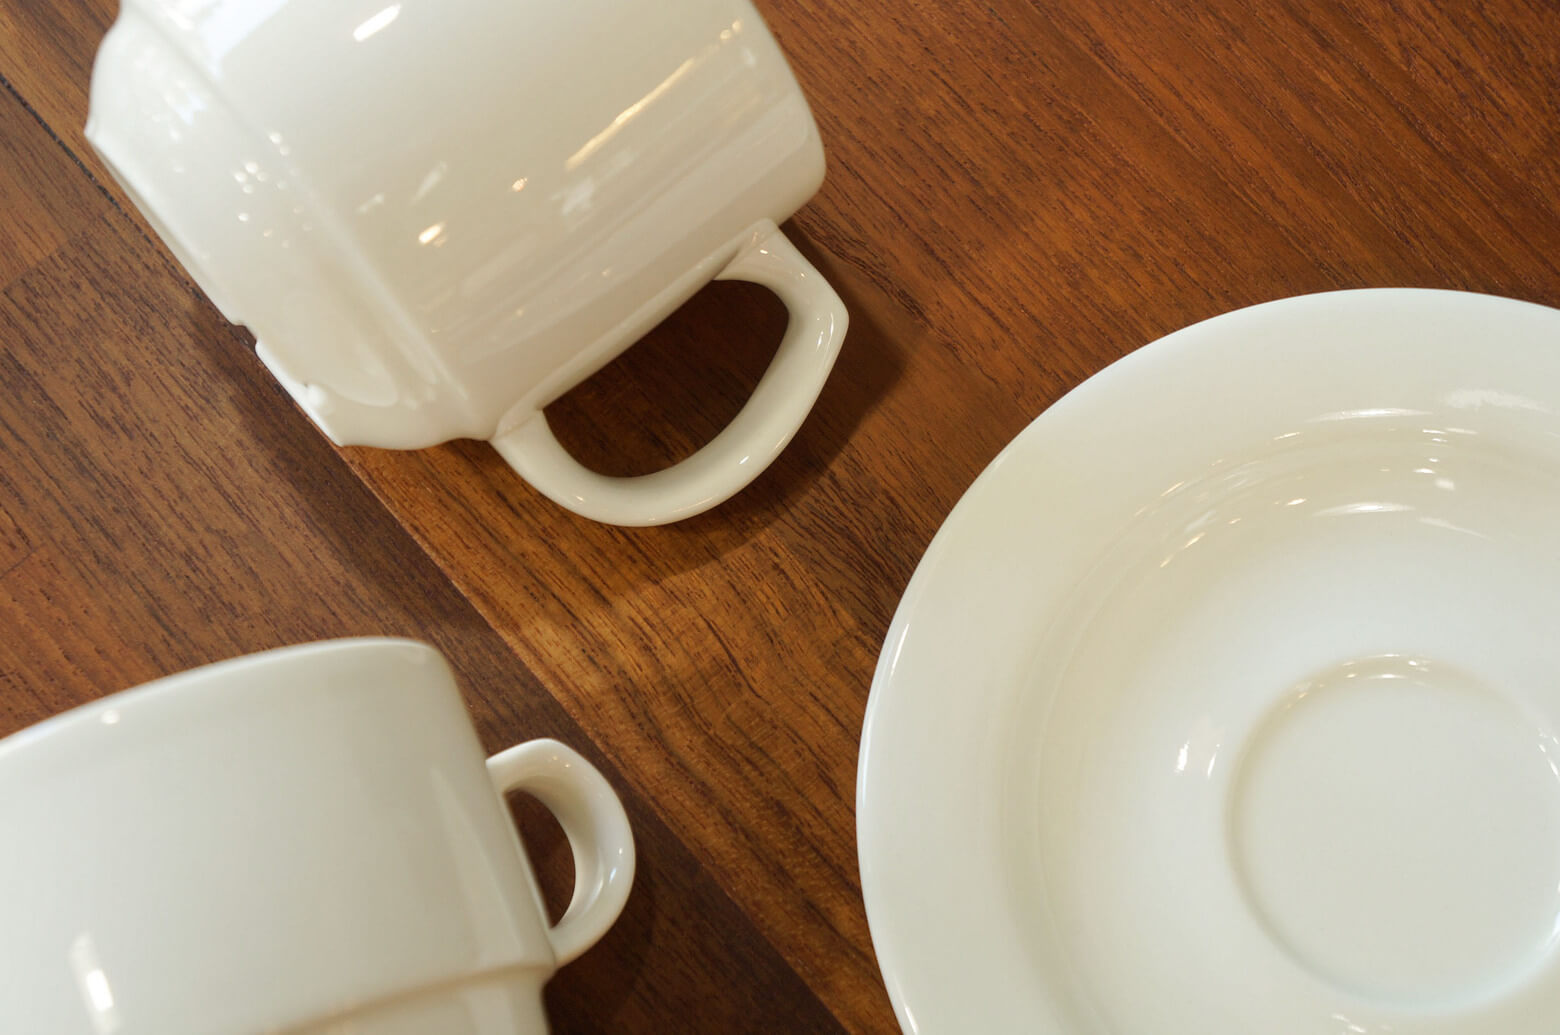 ARABIA Savoie Cup and Saucer and Mugcup/アラビア サヴォア カップ&ソーサー マグカップ 北欧食器 フィンランド